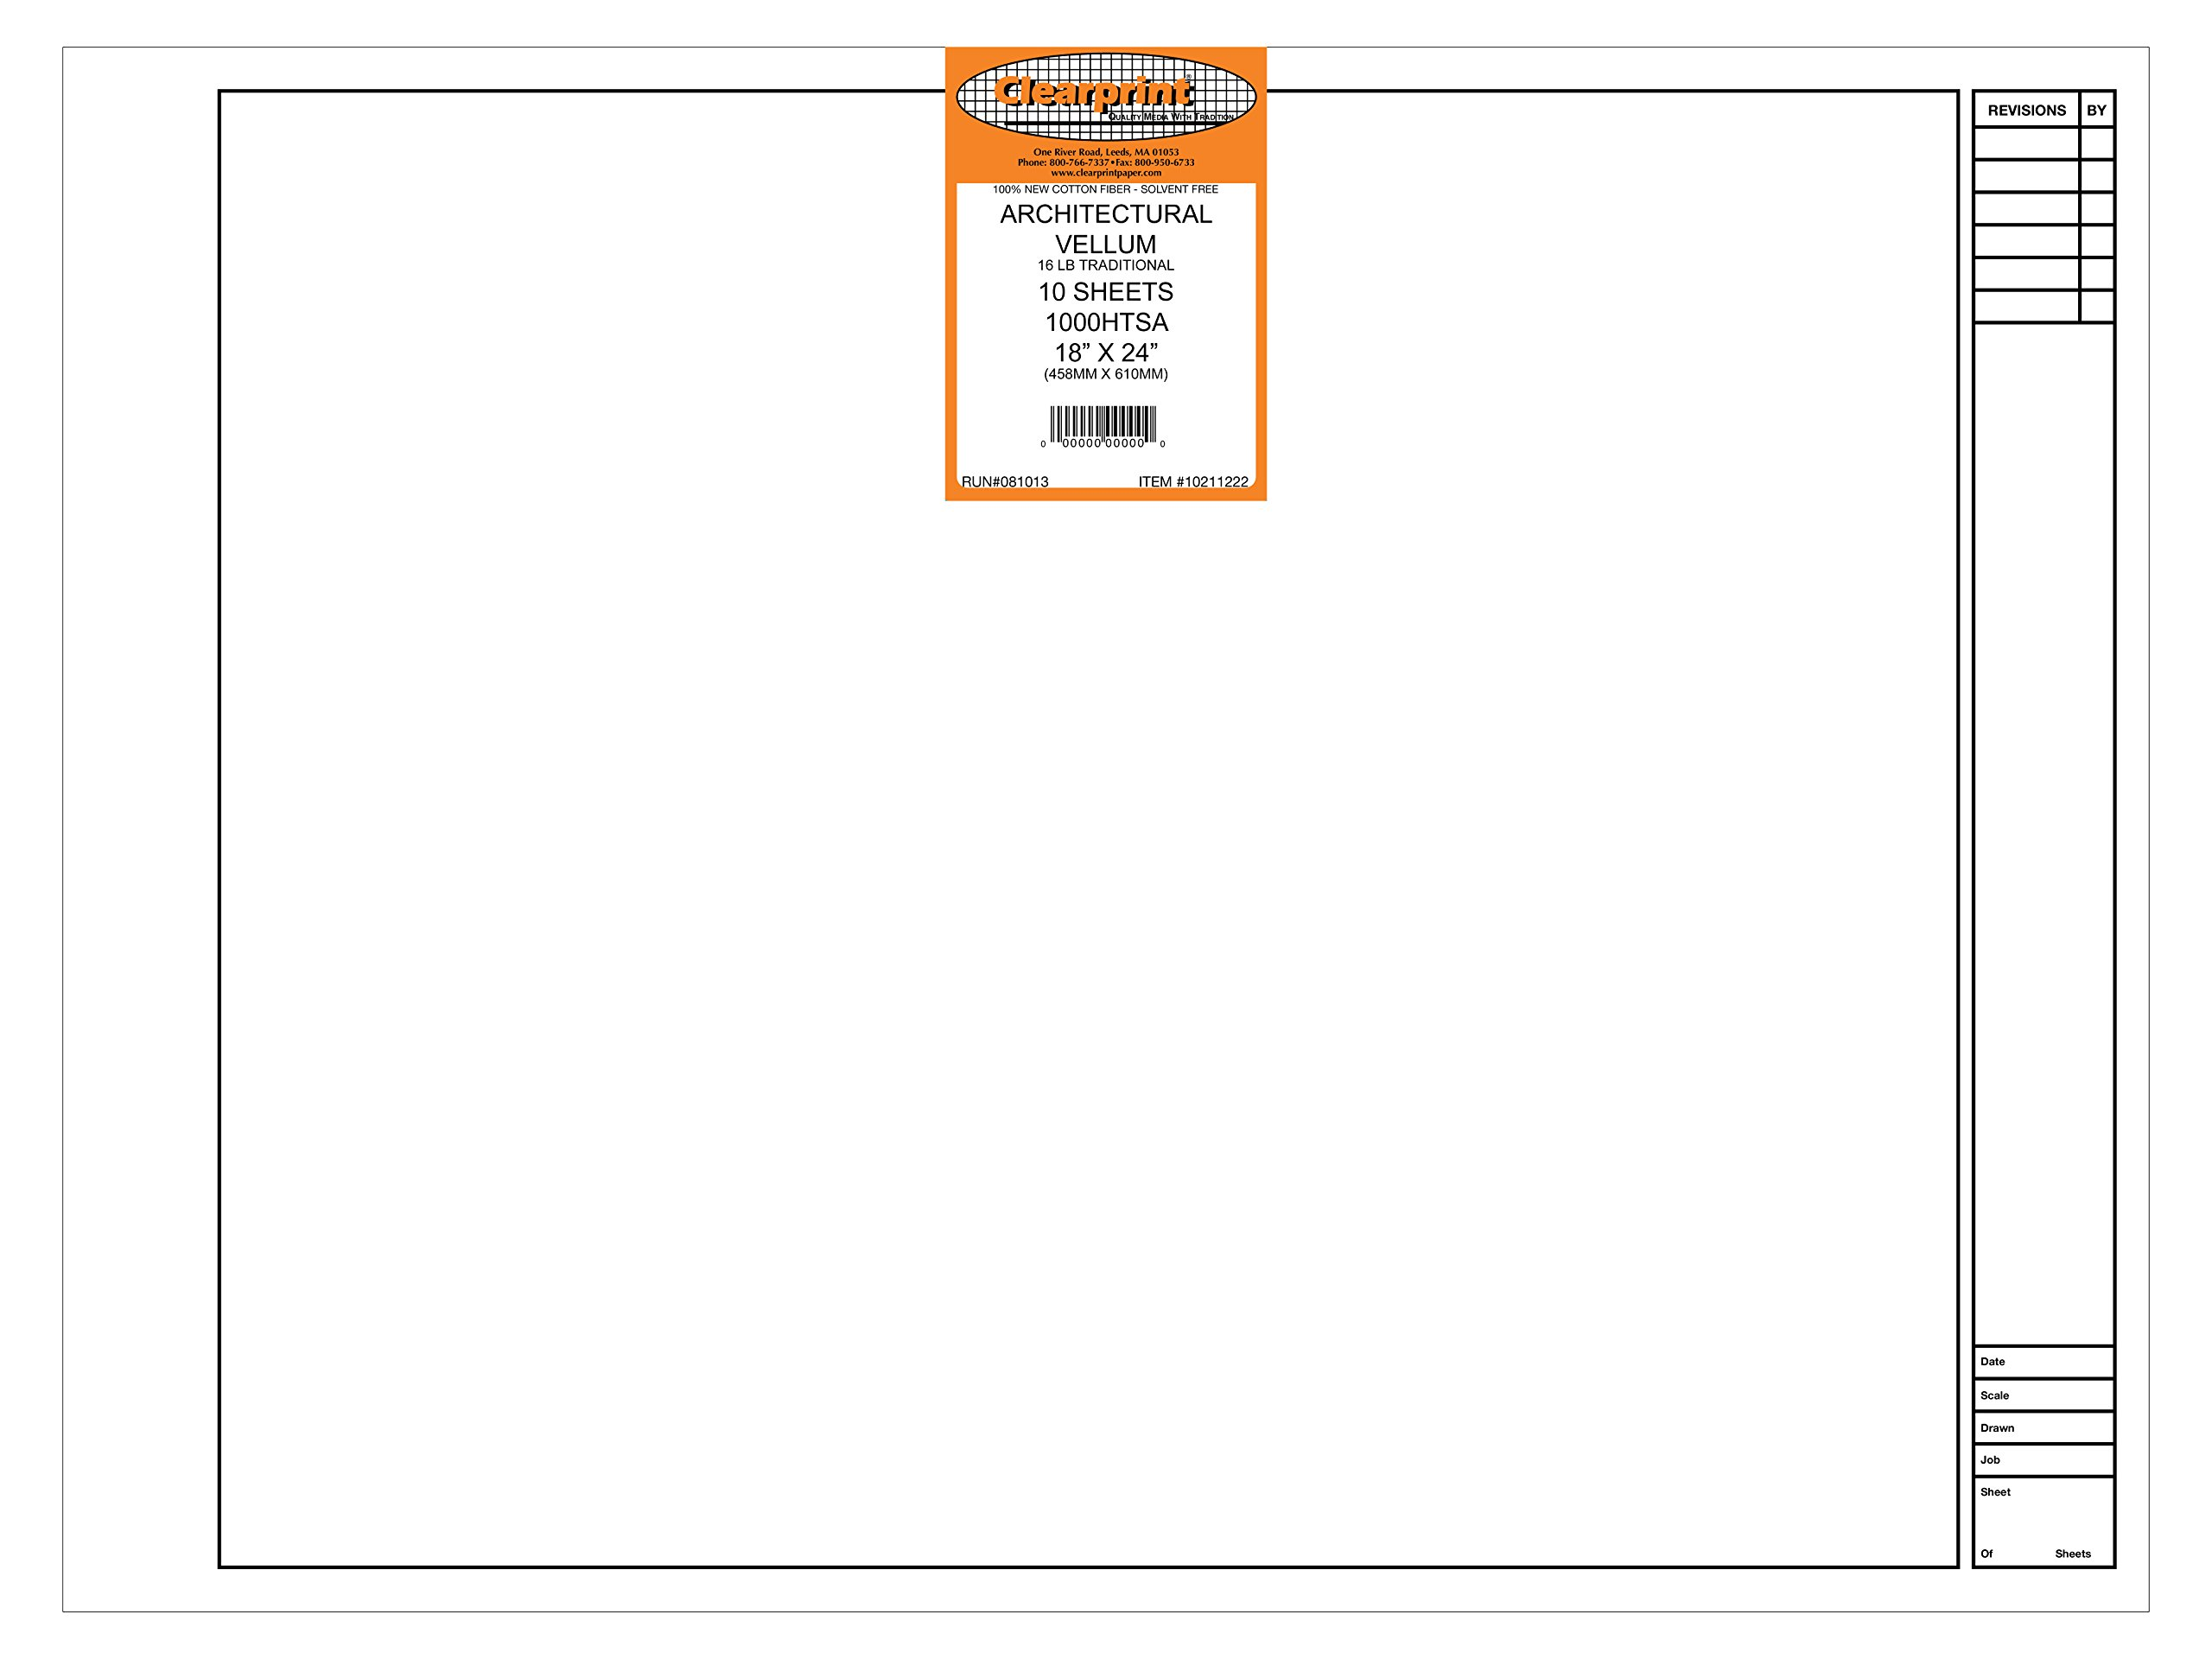 Clearprint 1000H Design Vellum Sheets with Architect Title Block, 16 lb, 100% Cotton, 18 x 24 Inches, 10 Sheets/Pack, Translucent White (10211222)